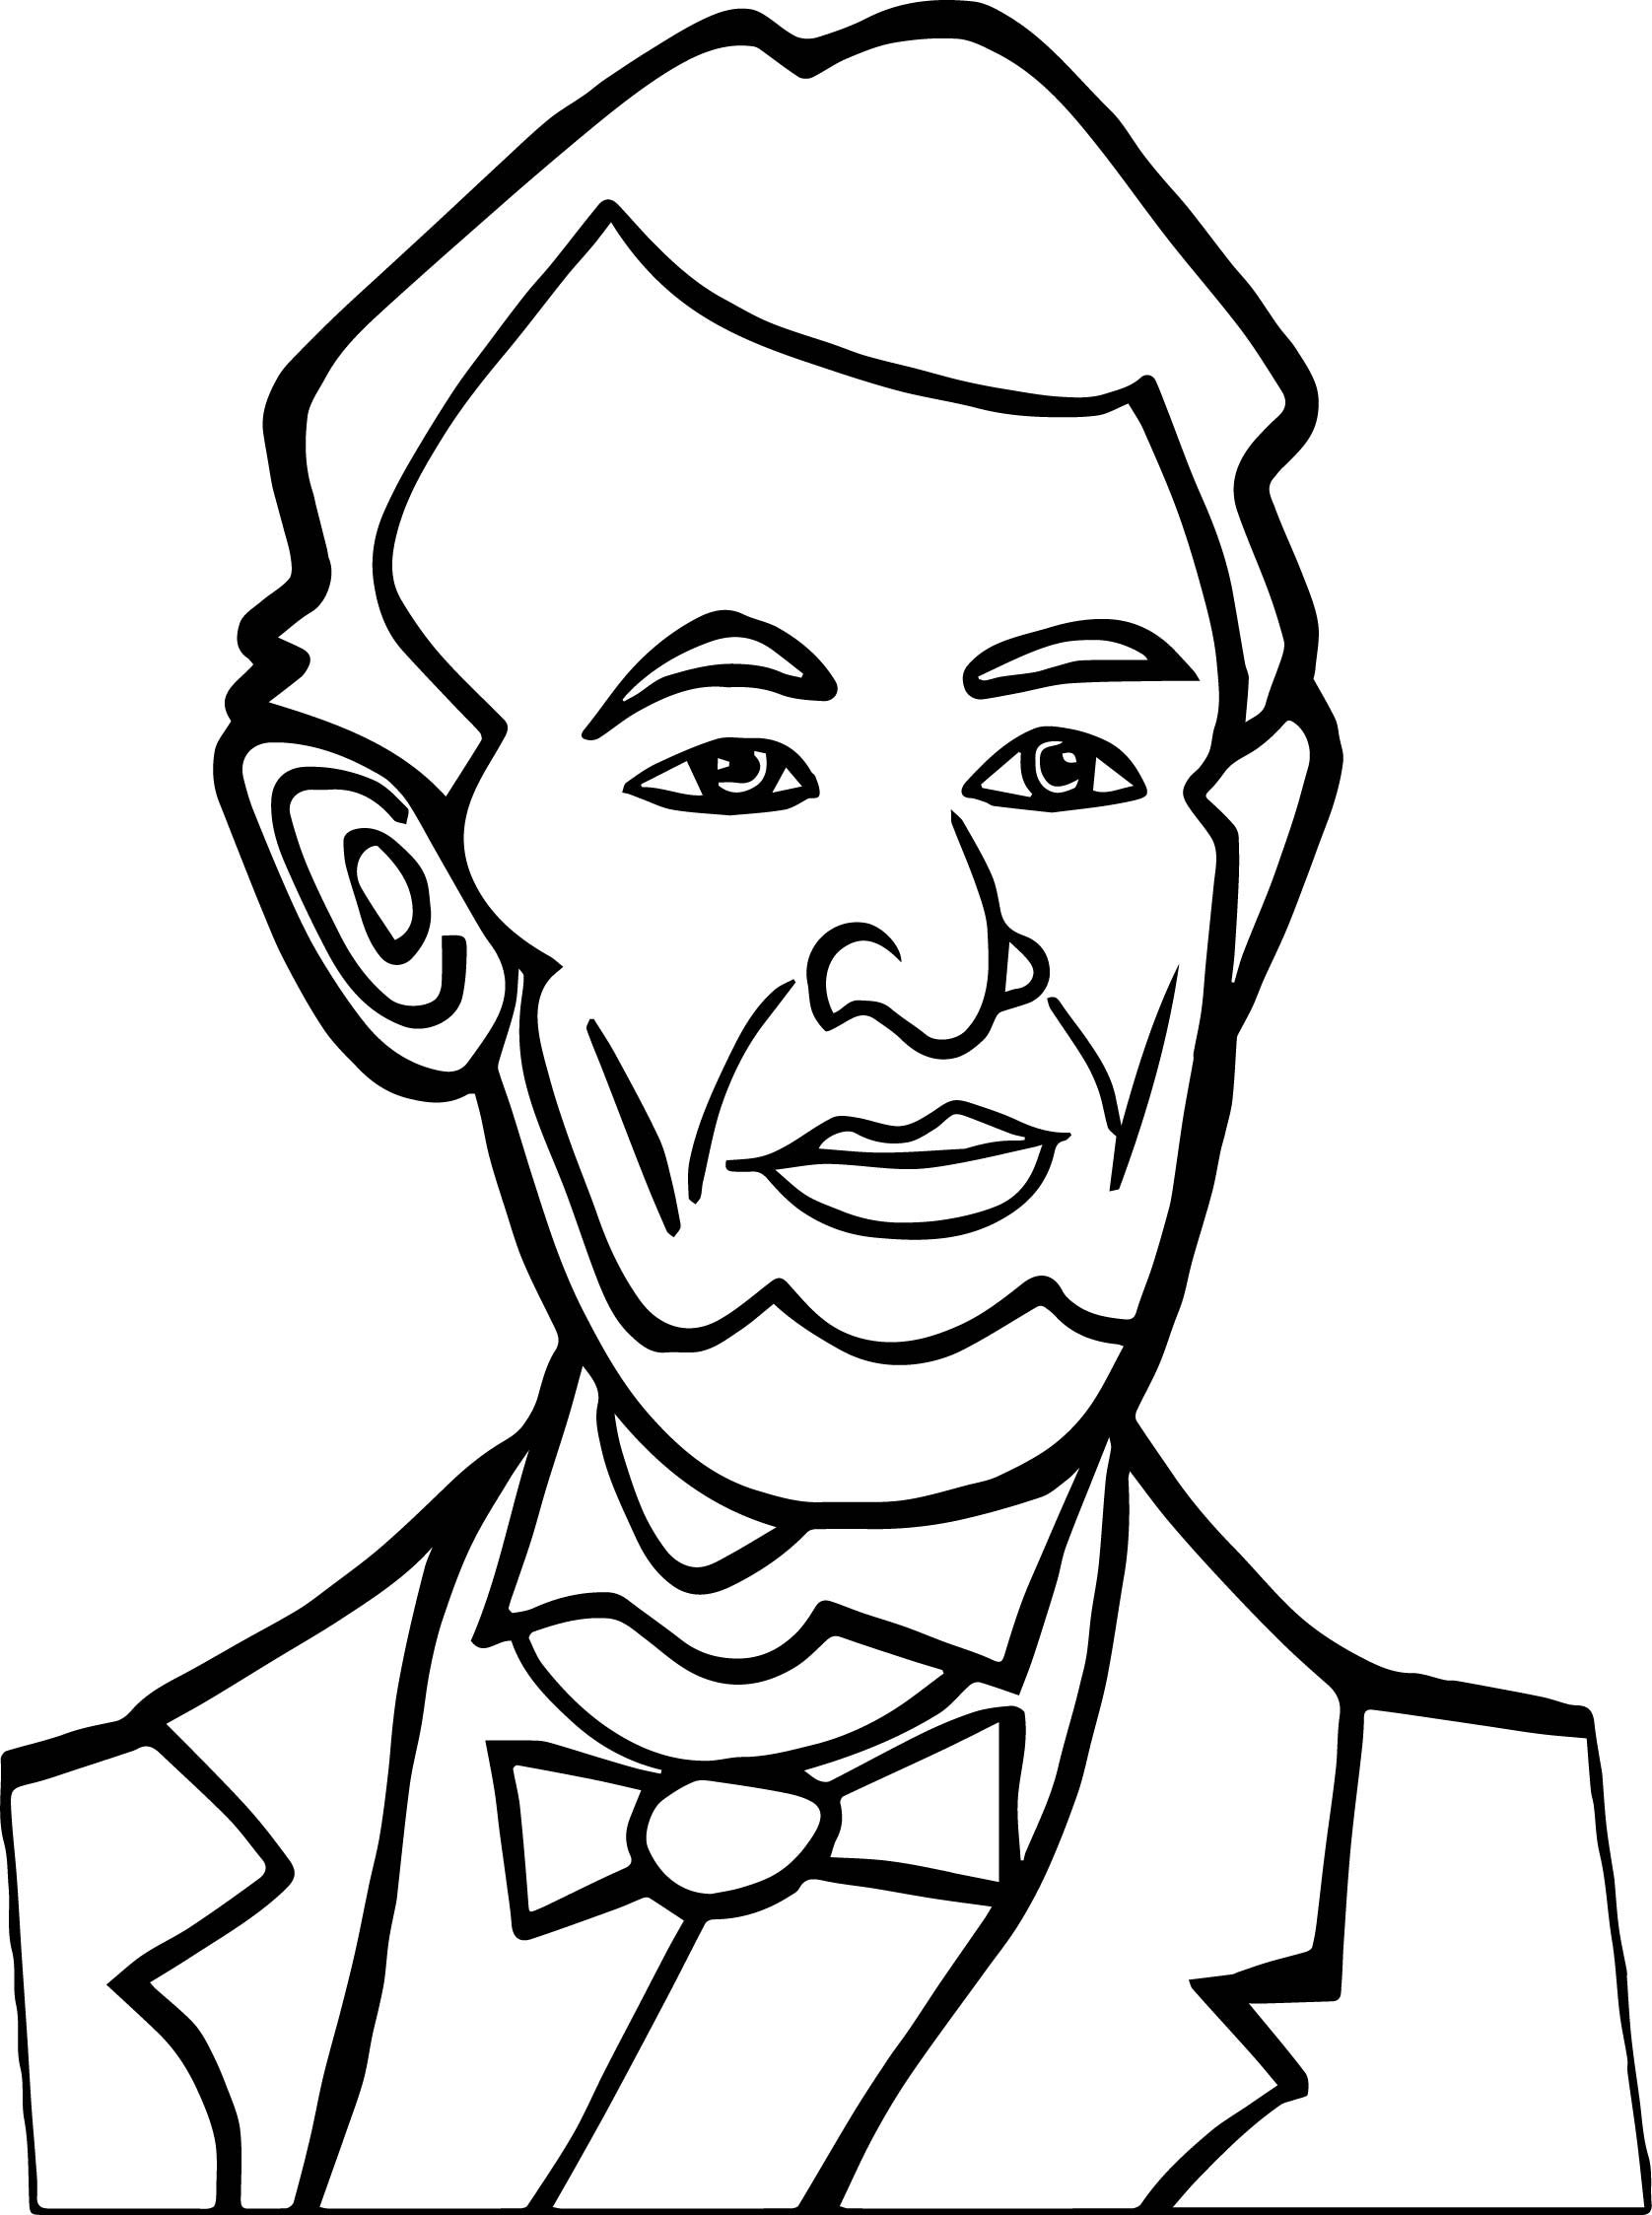 abraham lincoln coloring pages abraham lincoln with hat drawing at getdrawings free abraham lincoln coloring pages